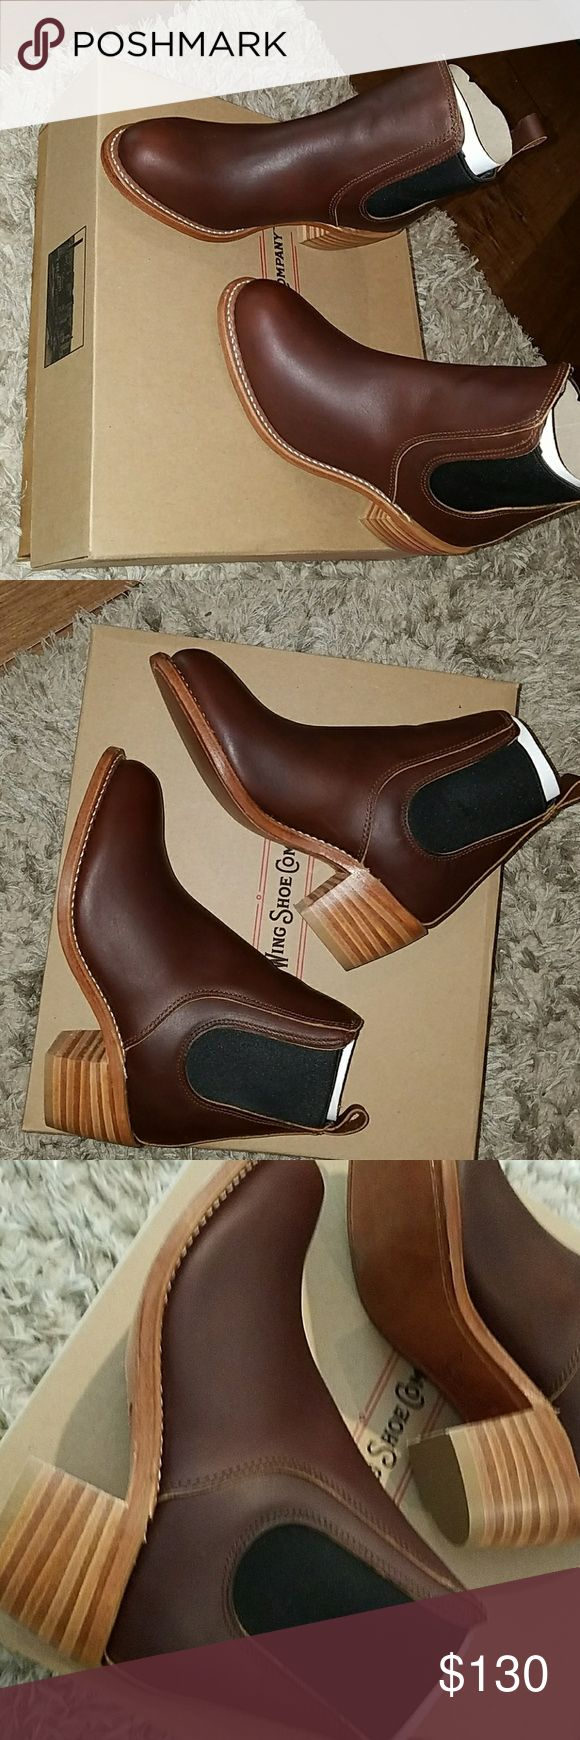 Red wing boots Real leather mahogany boots Red Wing Shoes Shoes Ankle Boots & Booties